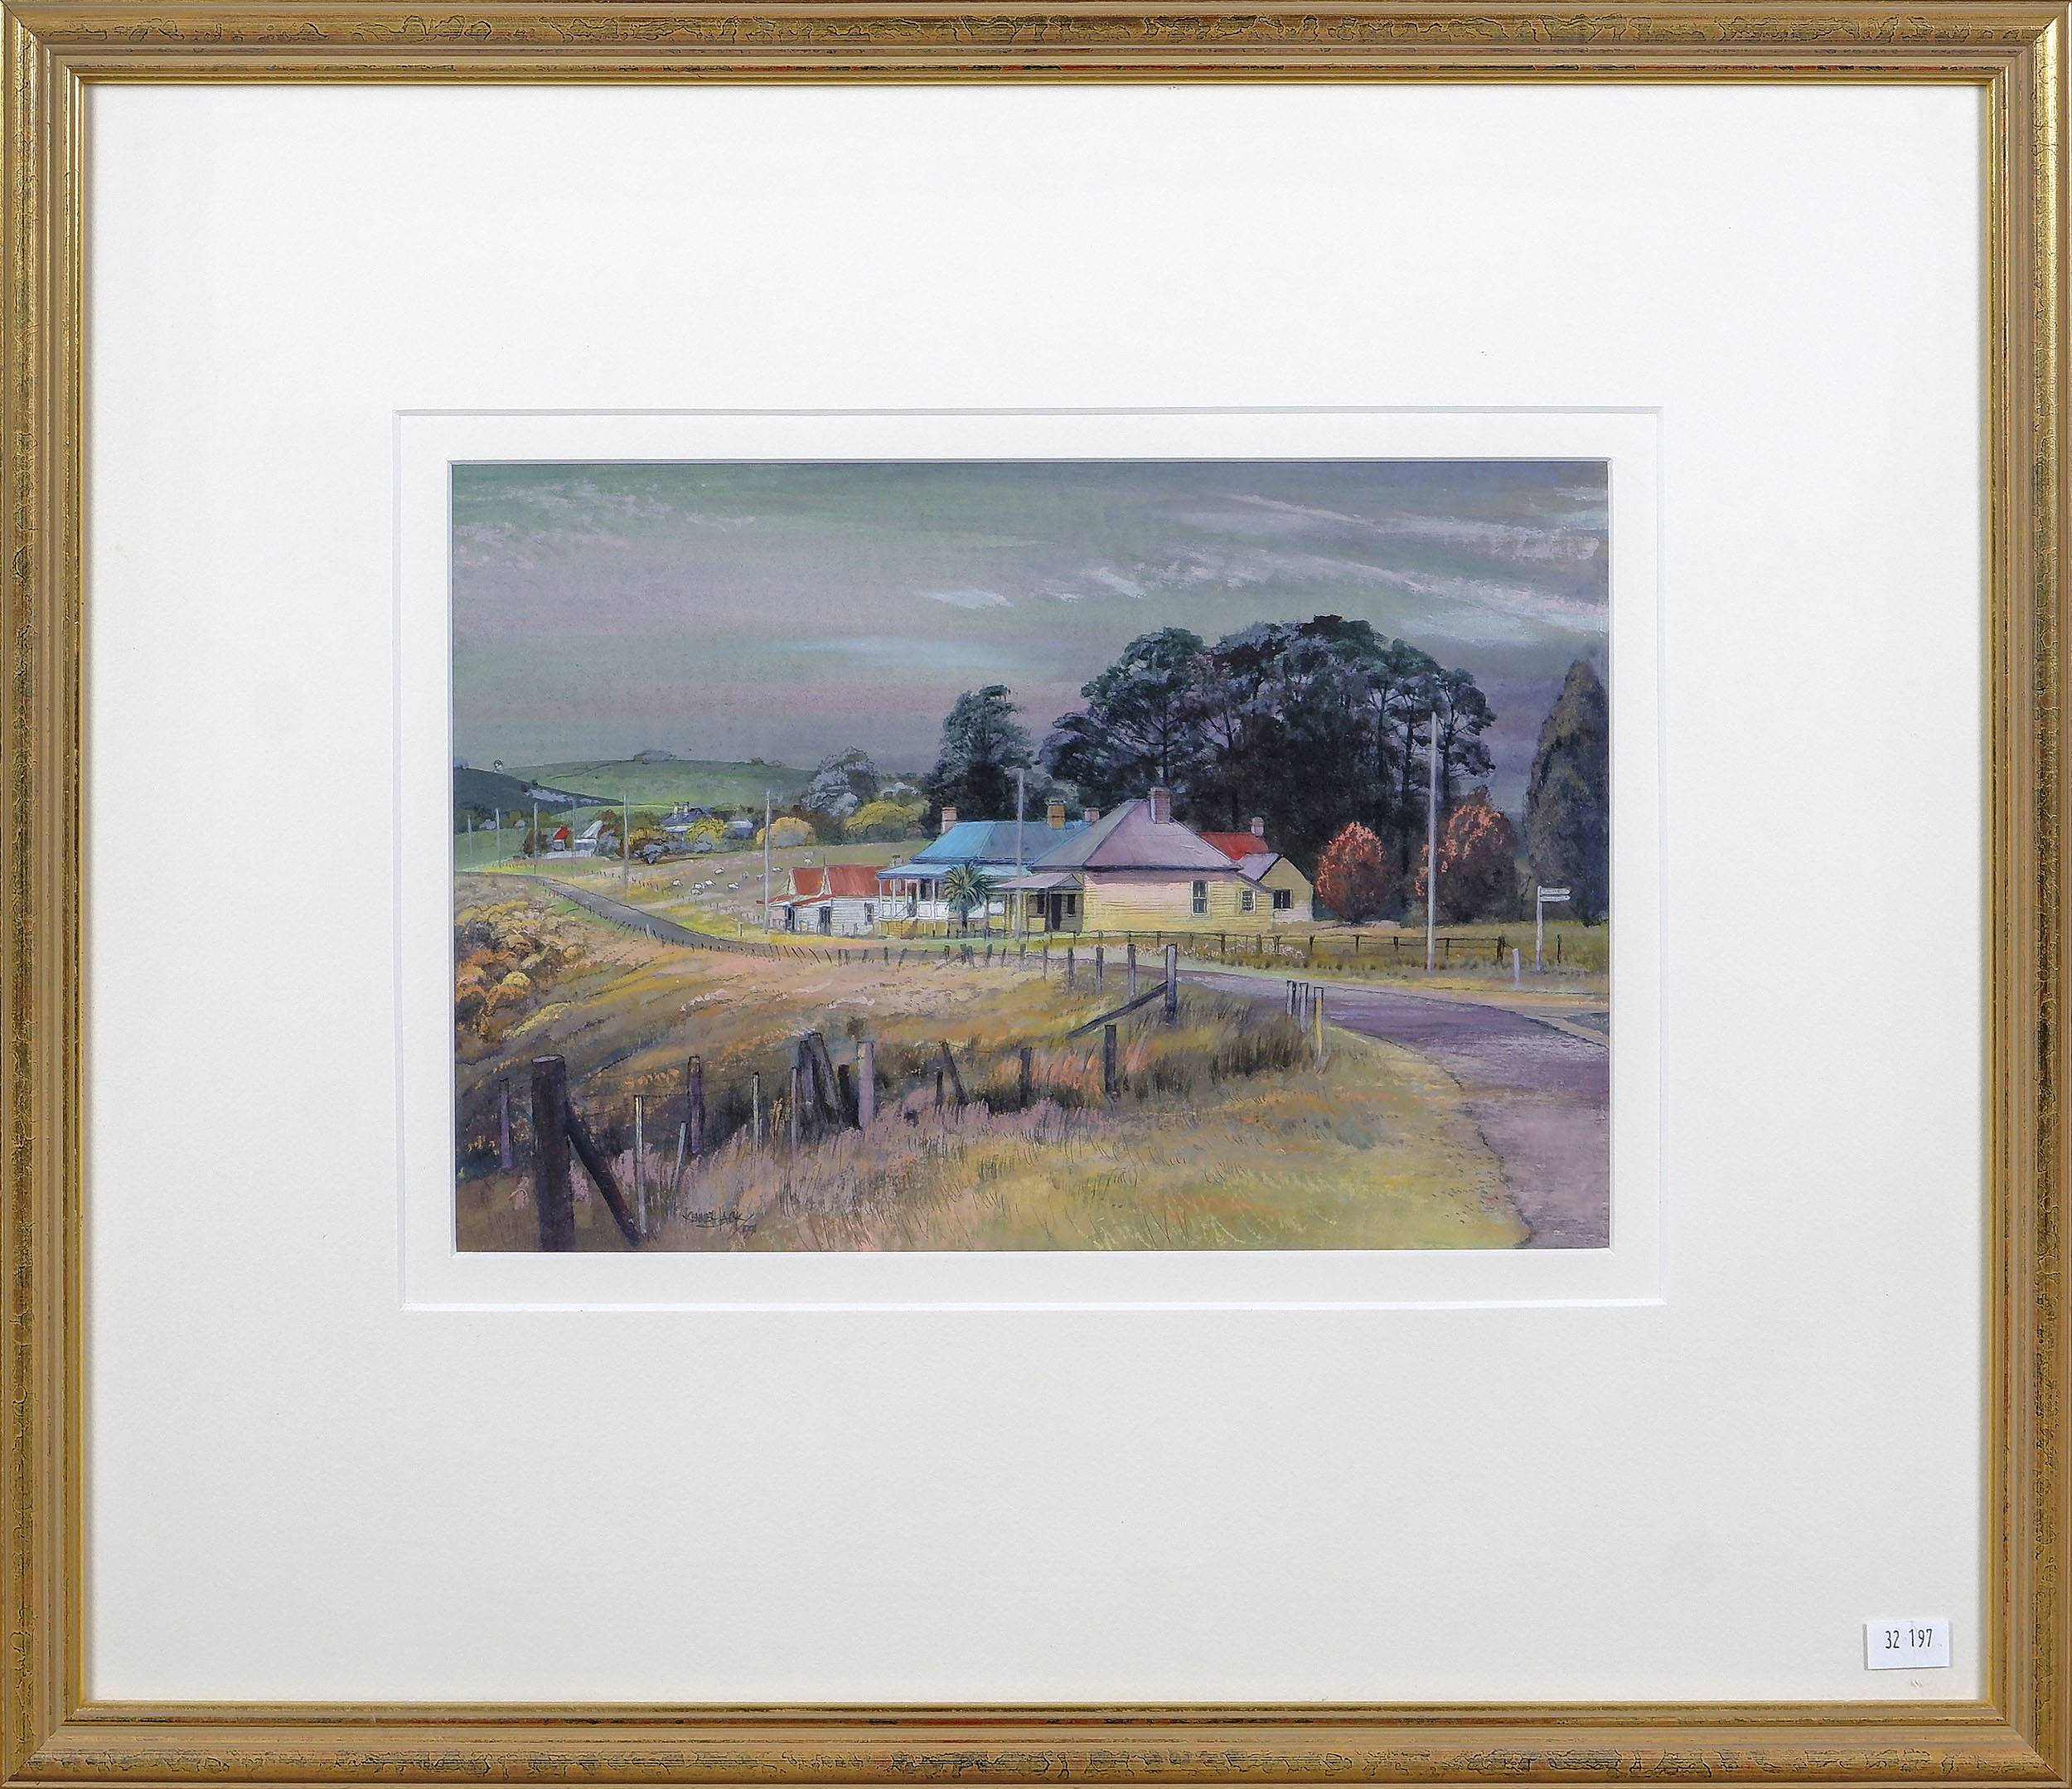 'Kenneth Jack (1924-2006) Majors Creek NSW 1991, Watercolour and Gouache on Paper'